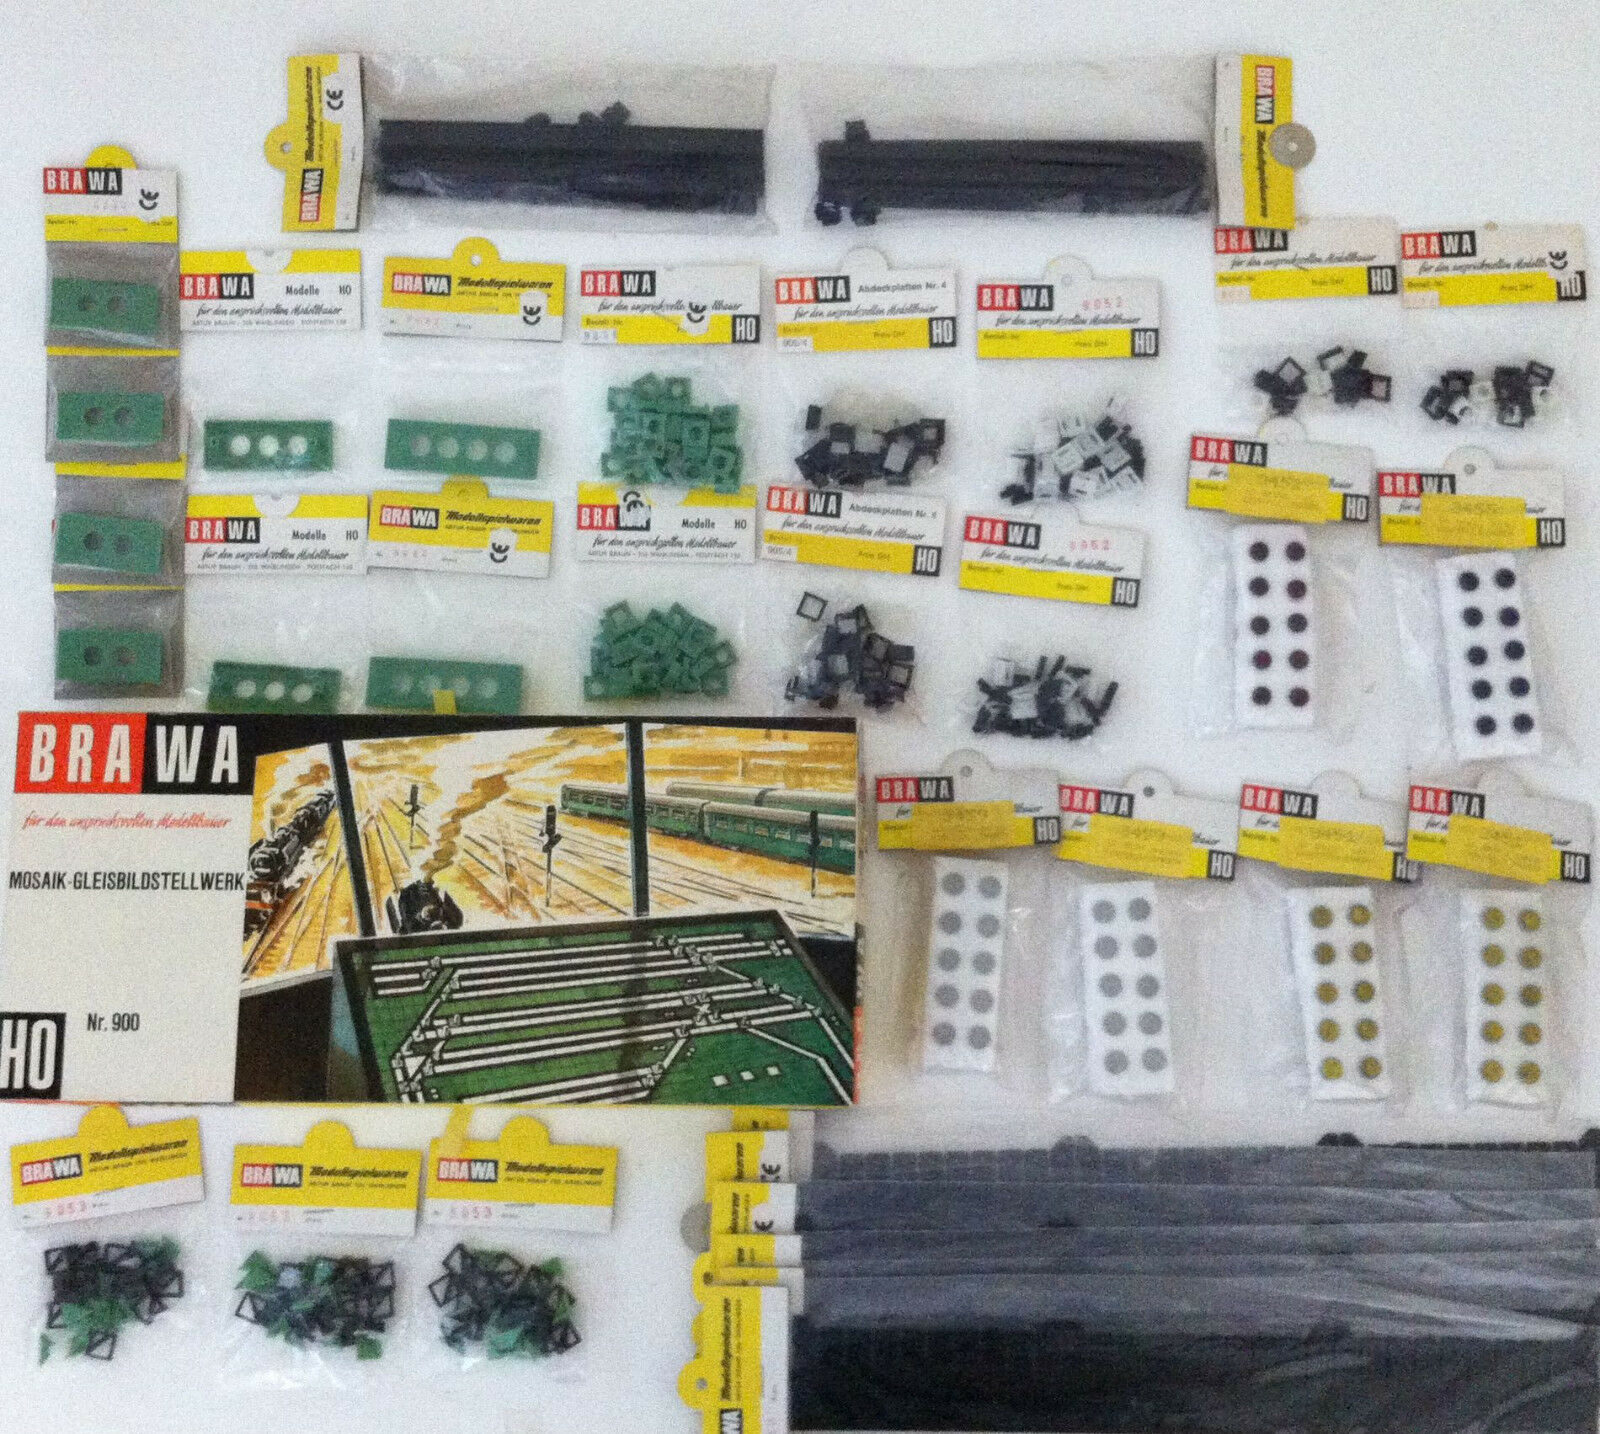 BRAWA XXL-binario immagine-stellwerkset n. 900 + accessori supplementare OVP